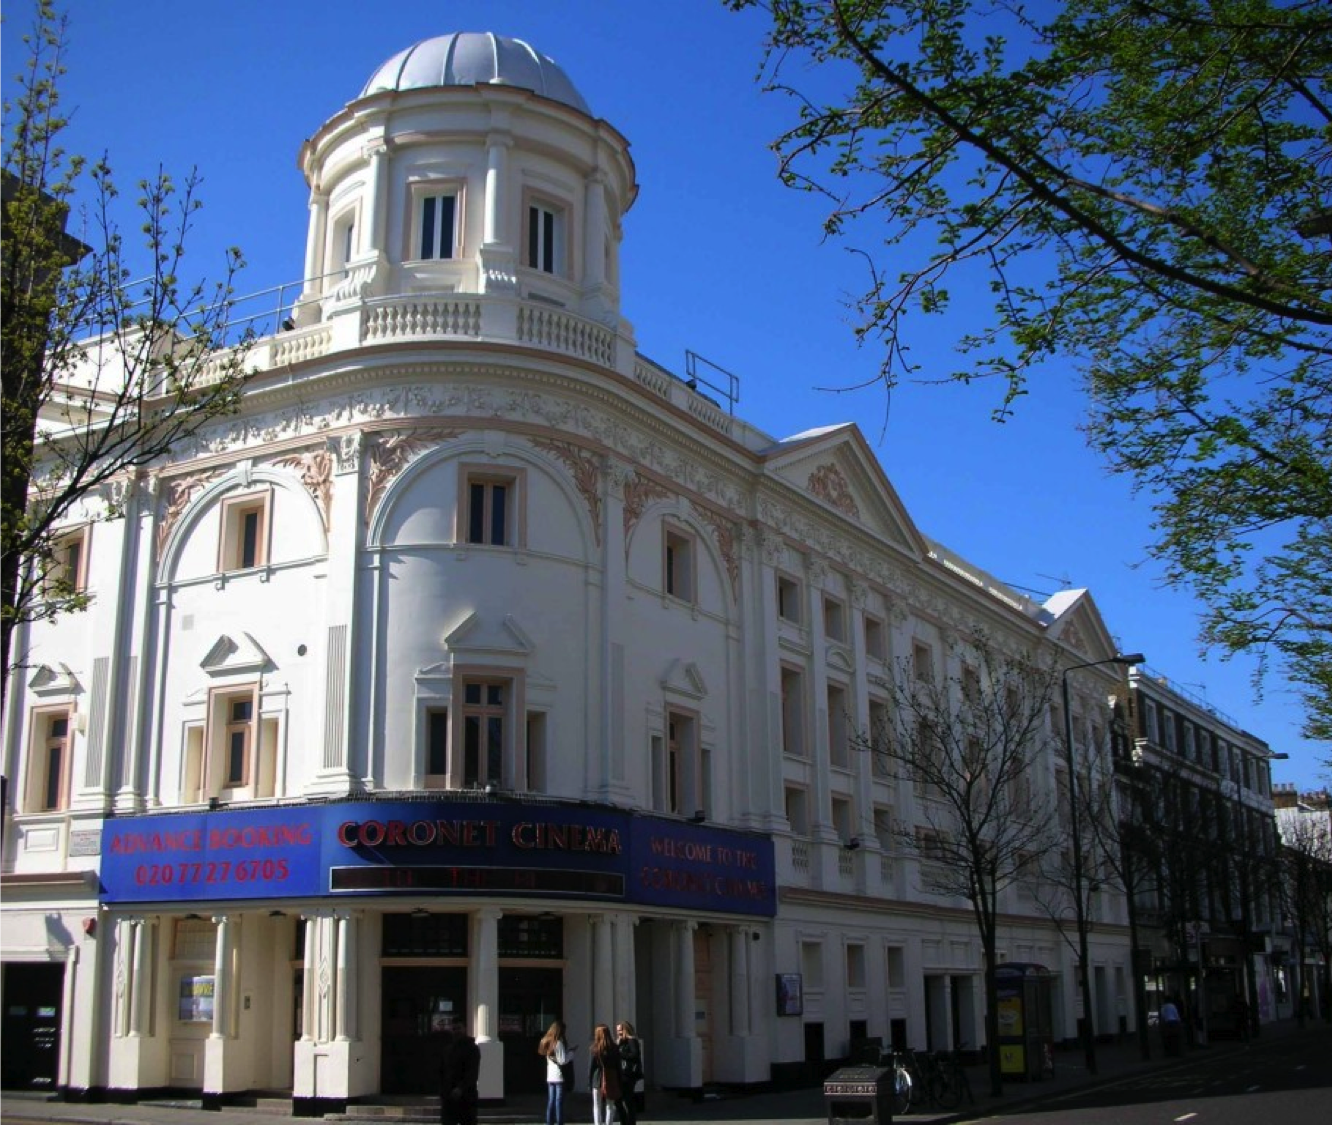 Coronet Cinema Notting Hill 104